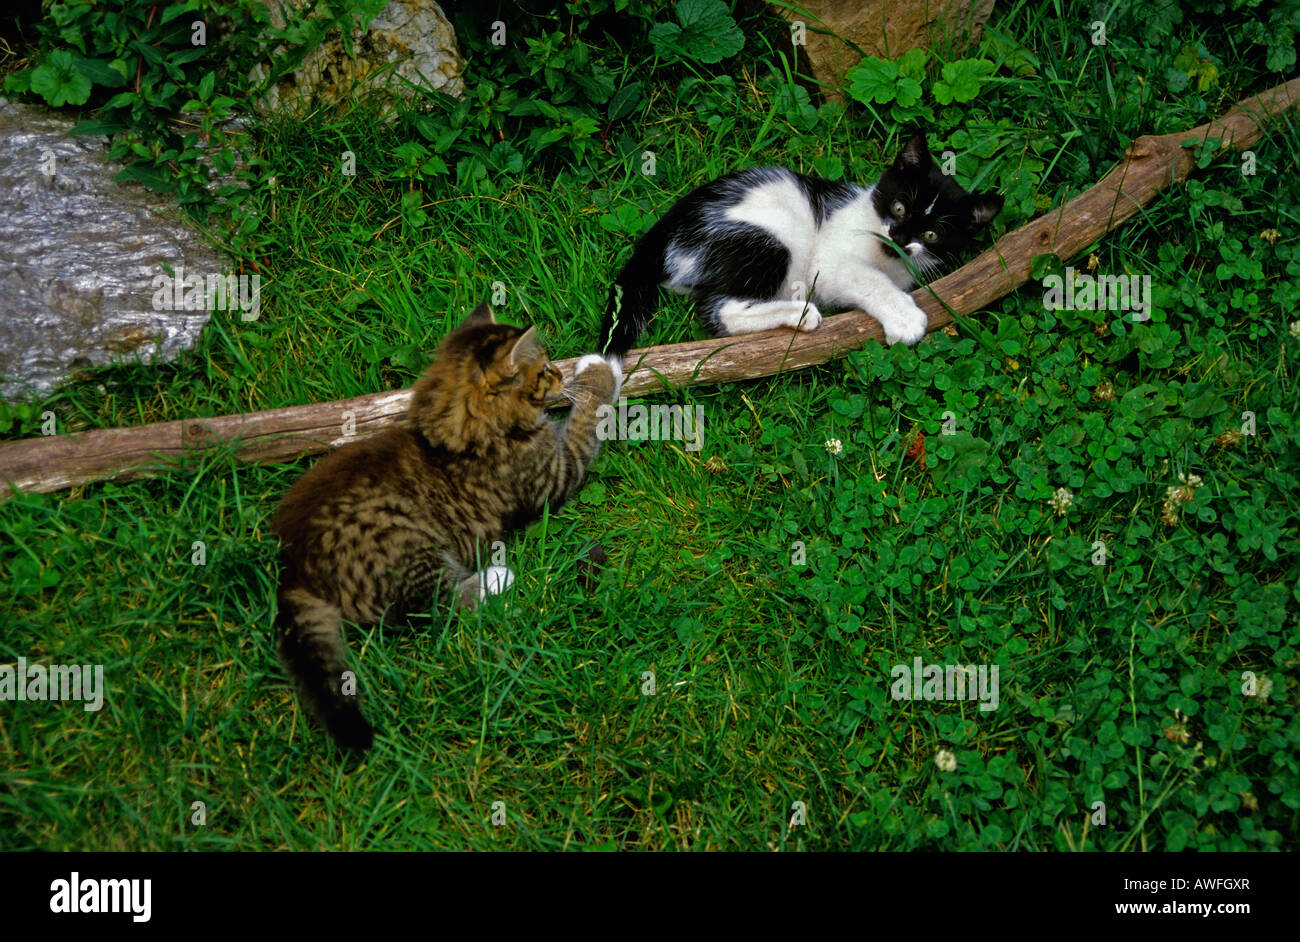 Two kittens playing - Stock Image